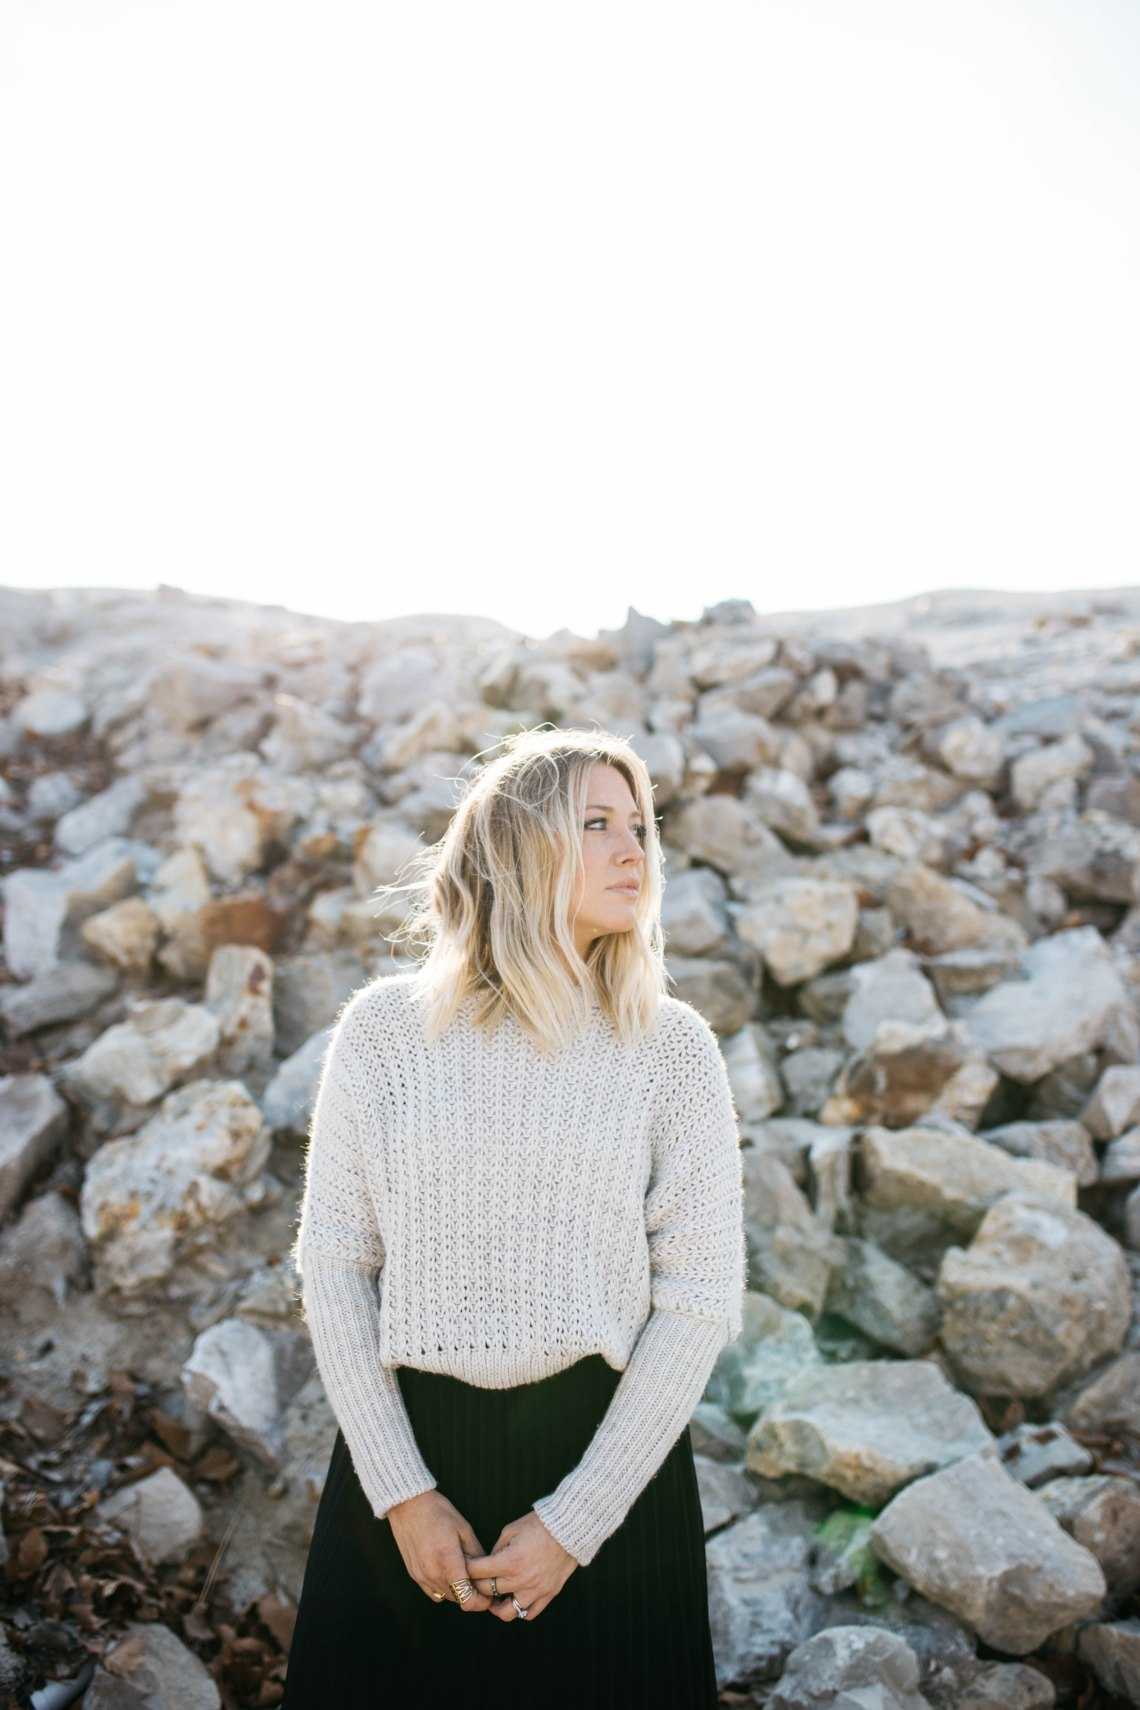 blonde girl by some rocks